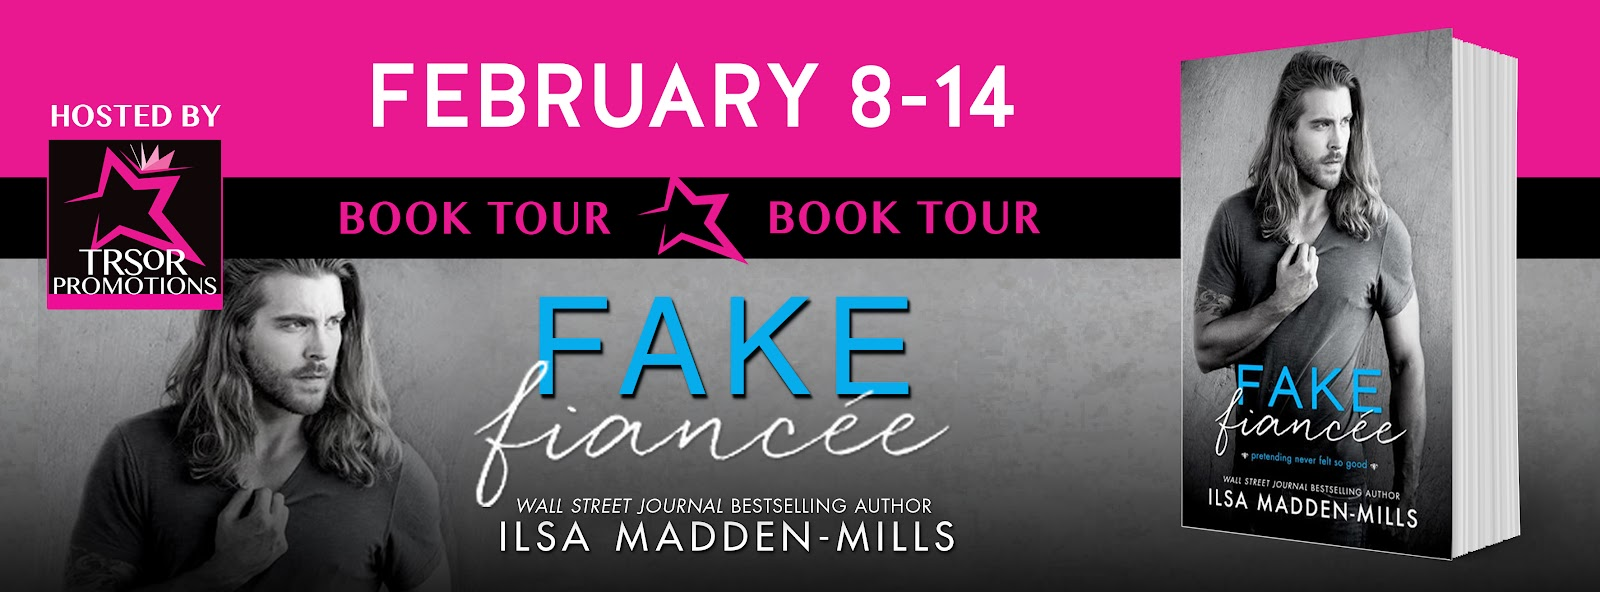 FAKE_FIANCEE_BOOK_TOUR.jpg